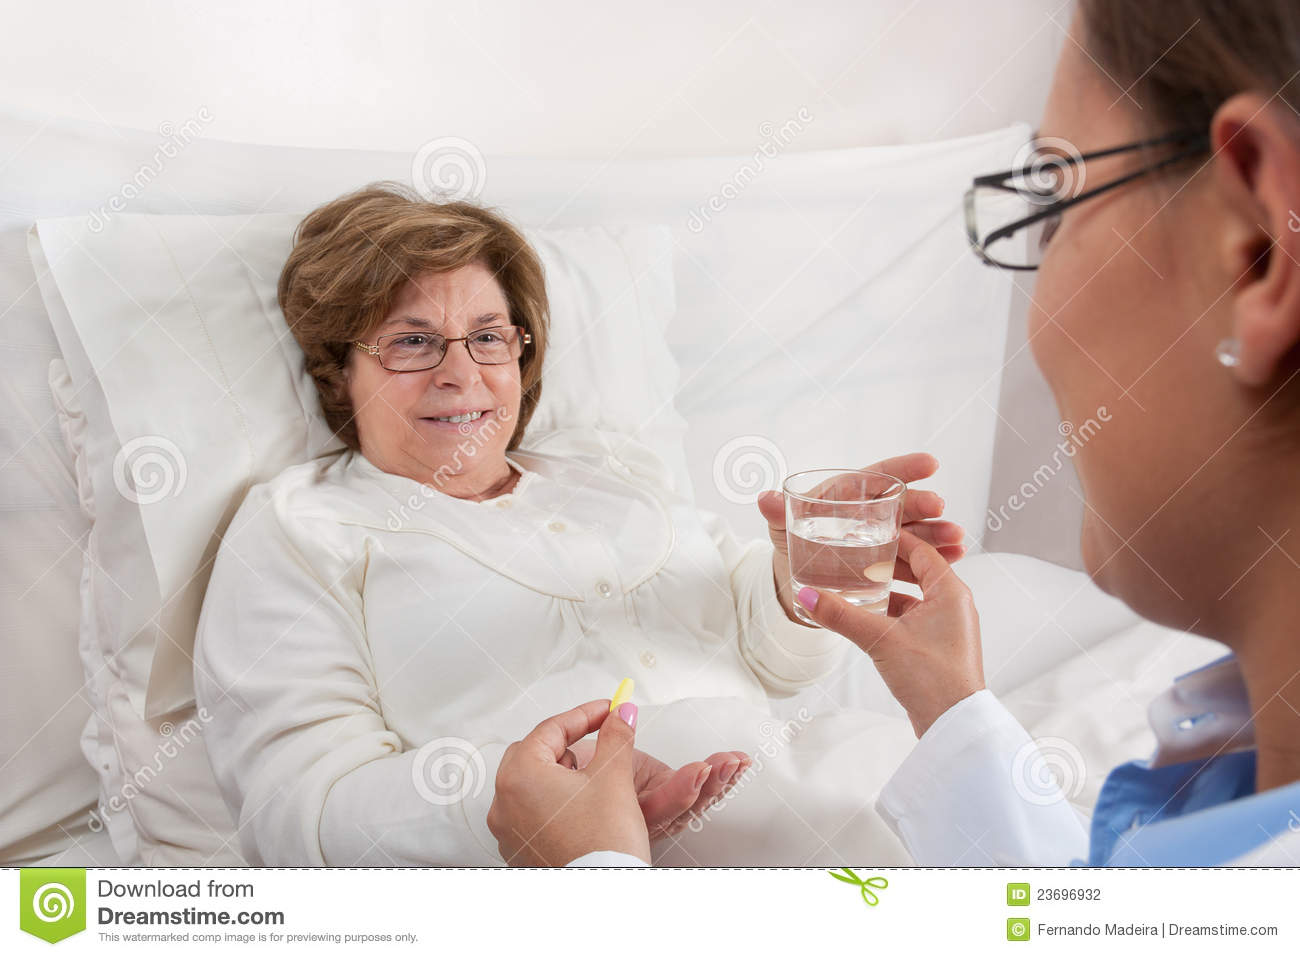 Doctor Sitting In Bed Gives Medication And A Glass Of Water To